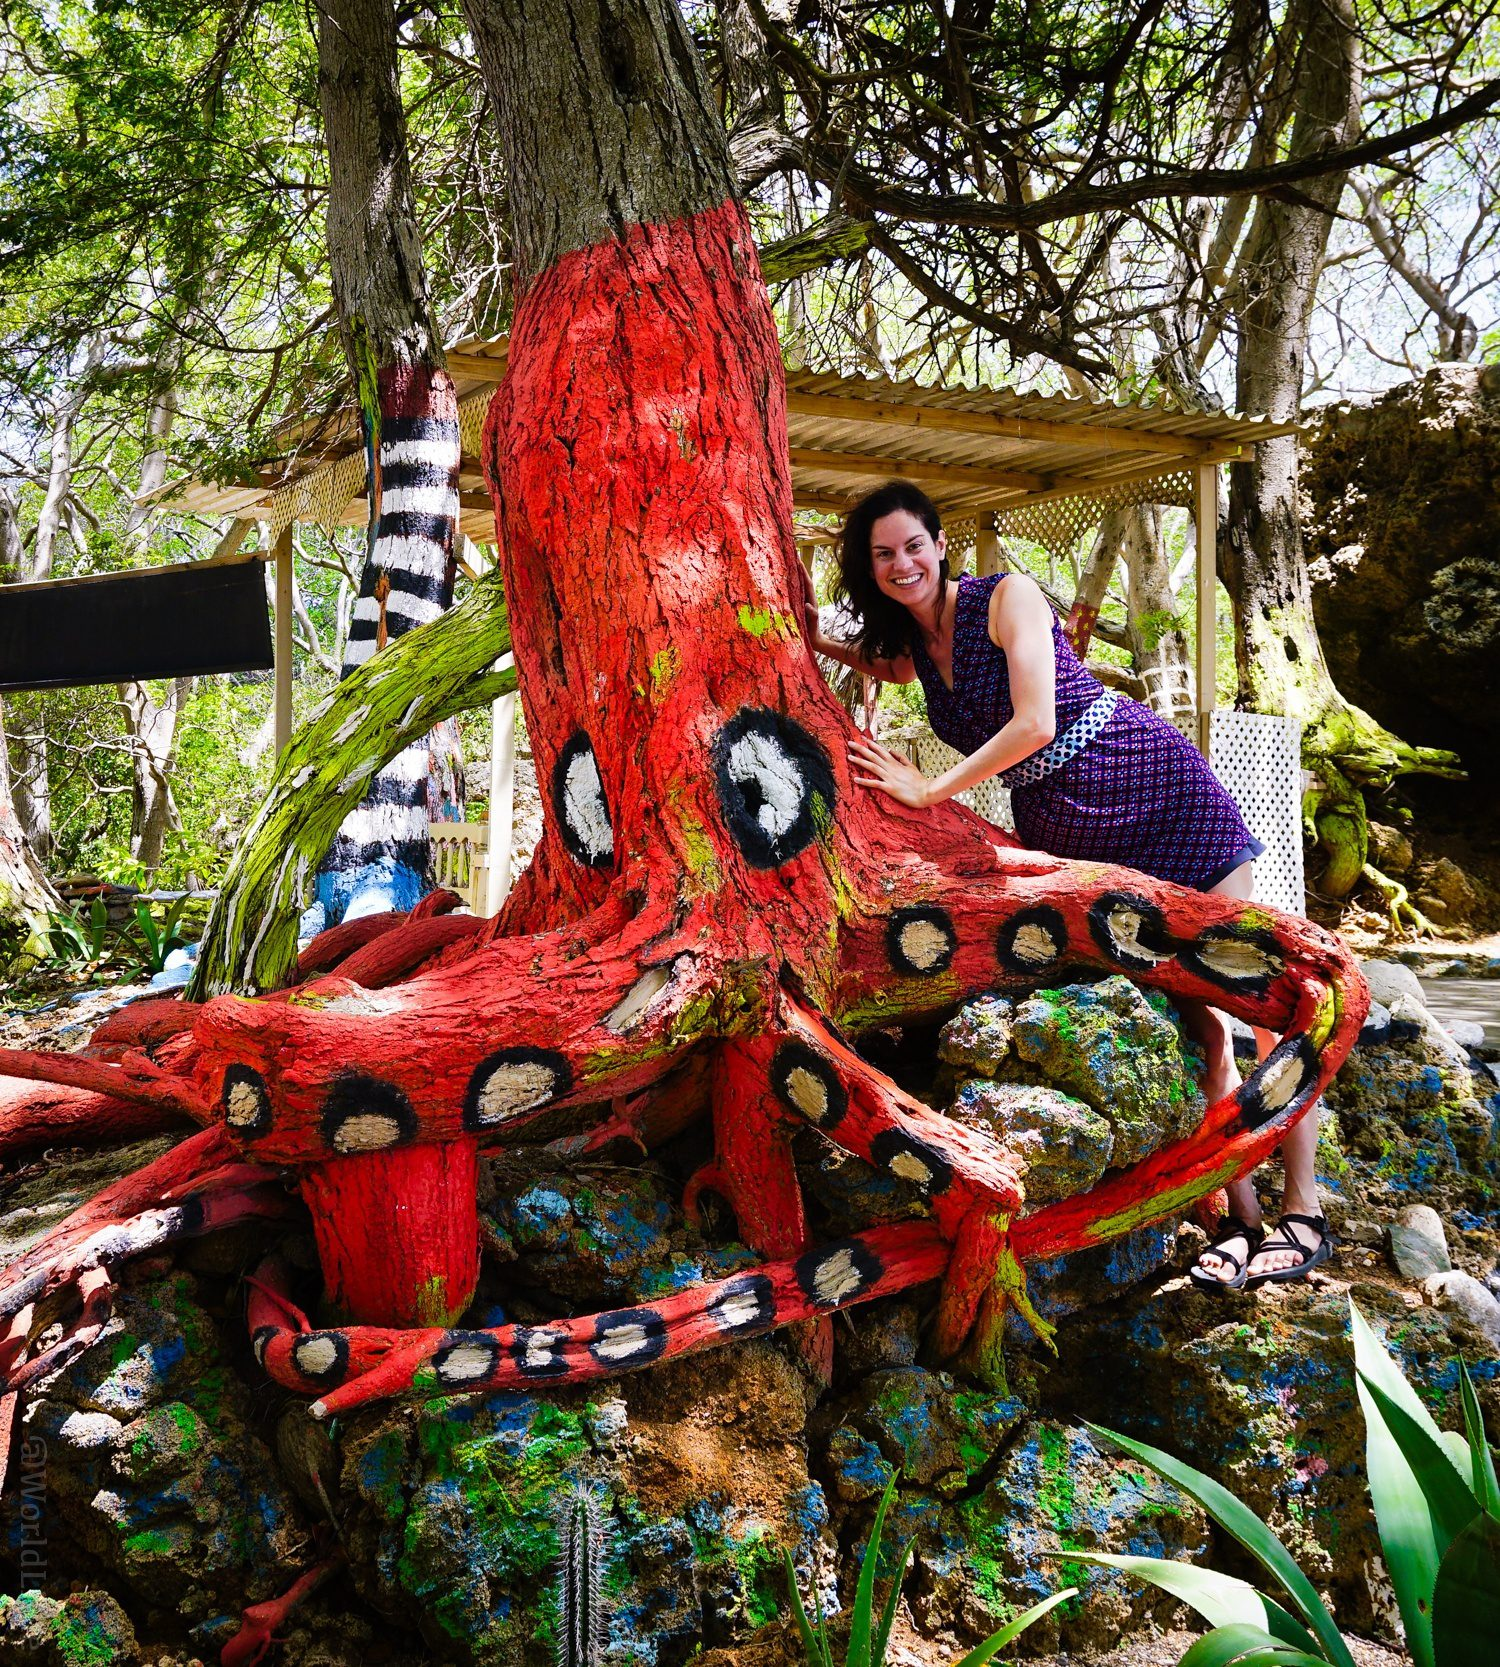 I loved this octopus tree! Curaçao rocks out public art!